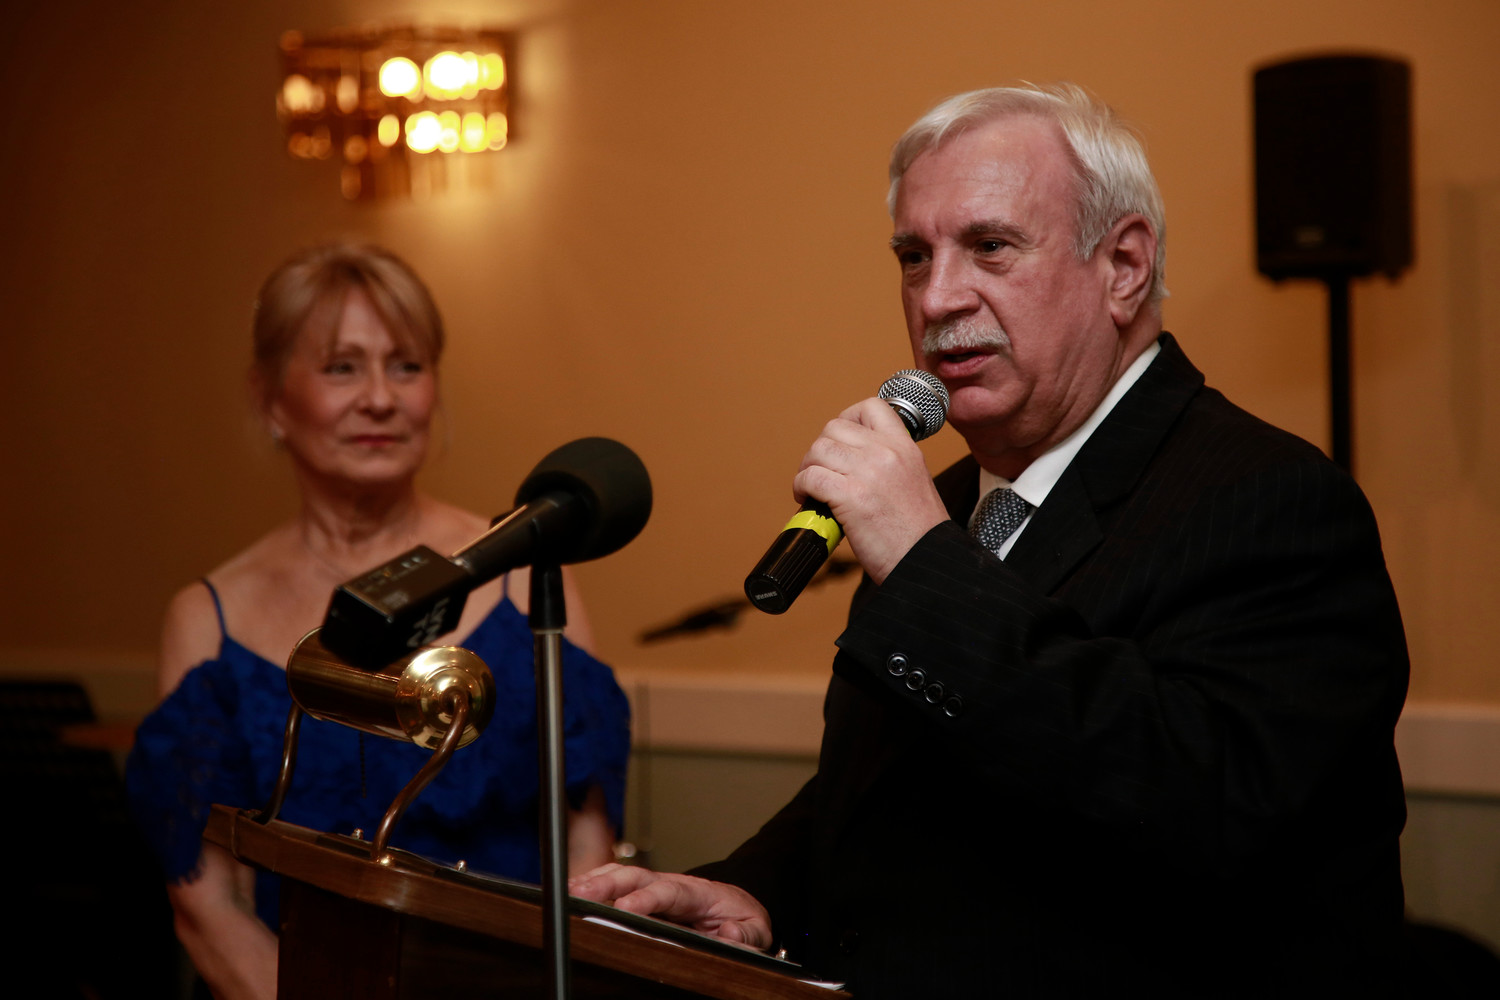 Joe Neve was honored for serving as the Lynbrook Police Department chief for 27 years.